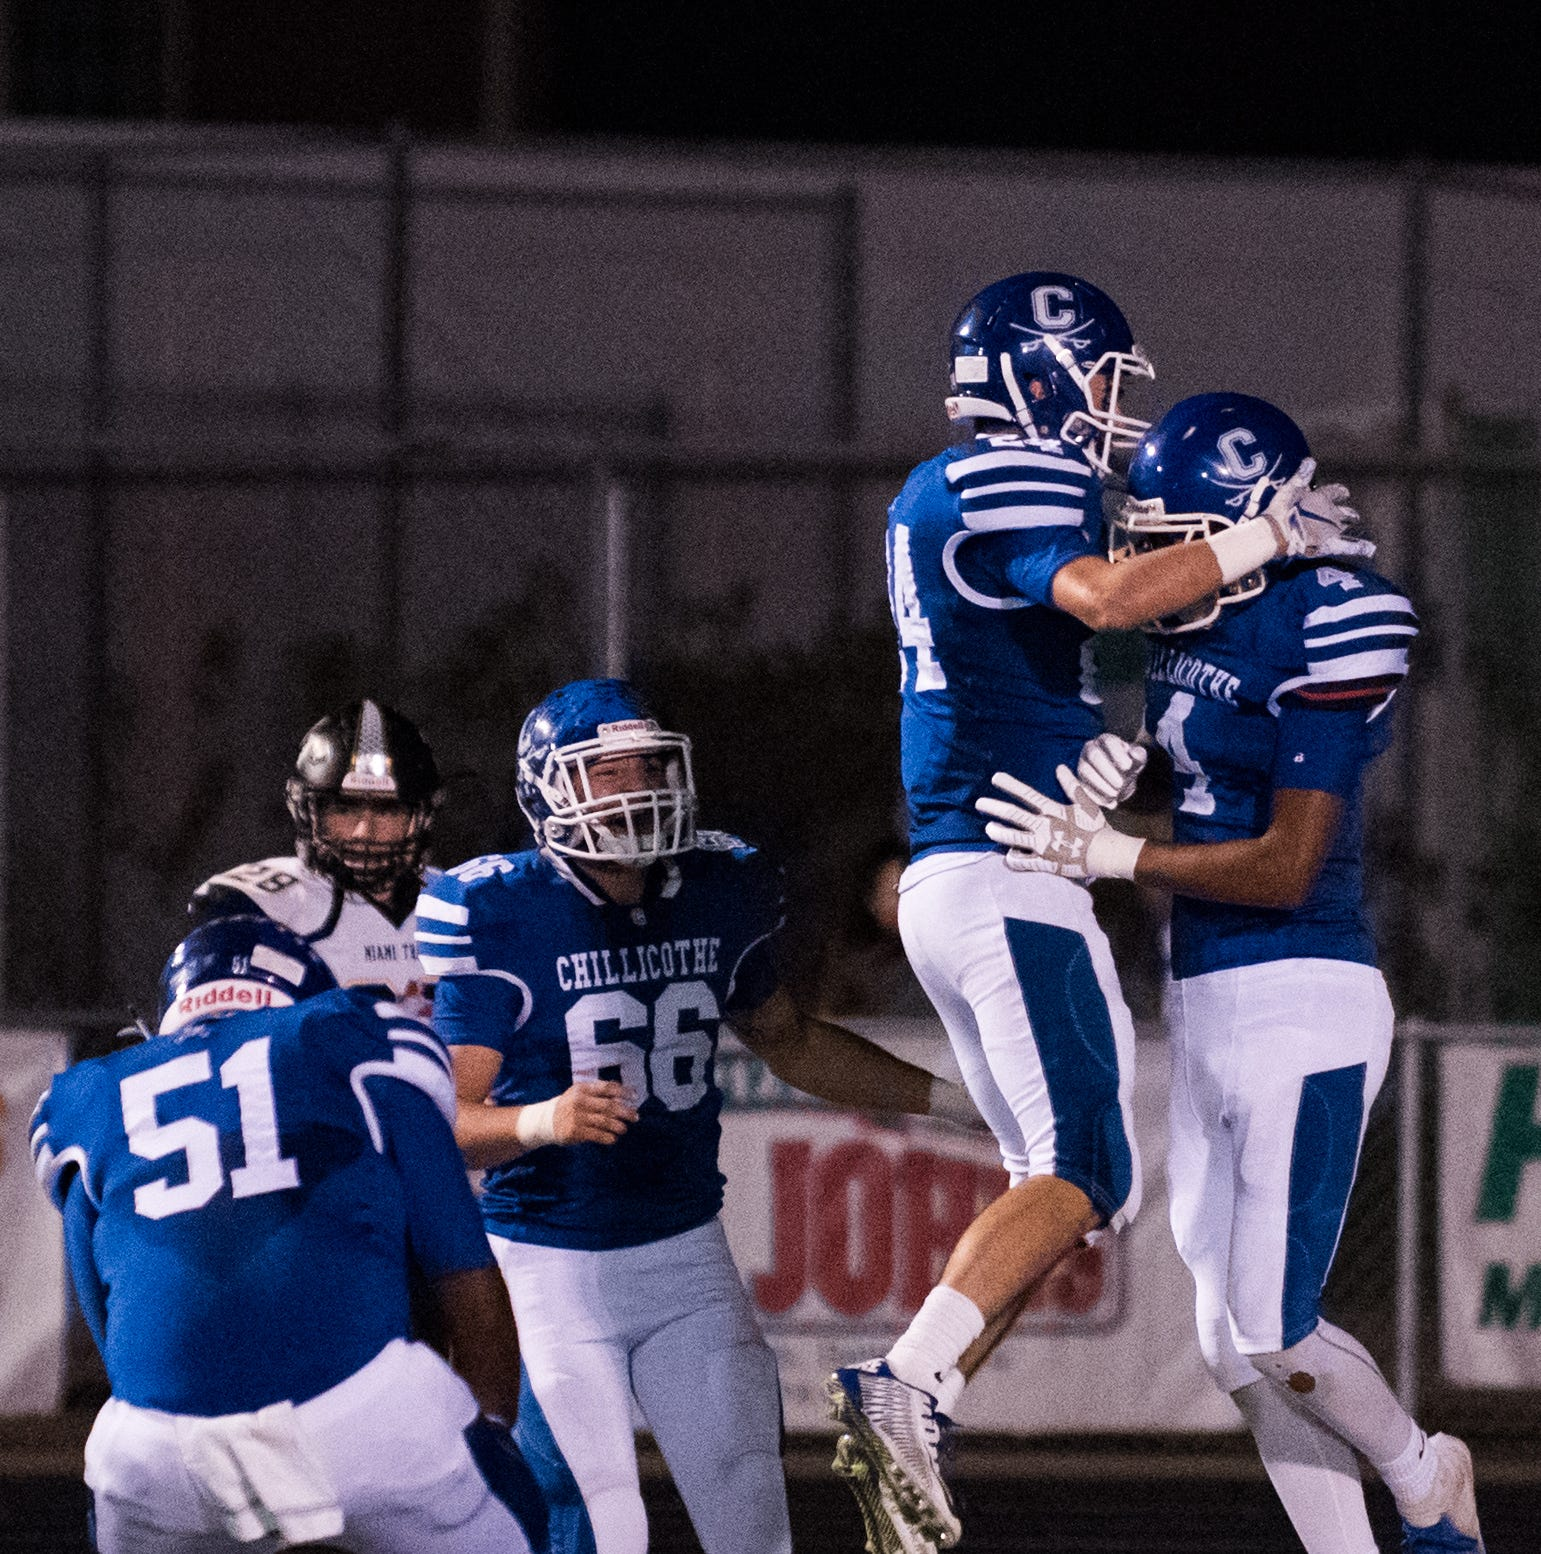 OHIO HS FOOTBALL: Four things to know about Chillicothe 49-14 rout of Miami Trace